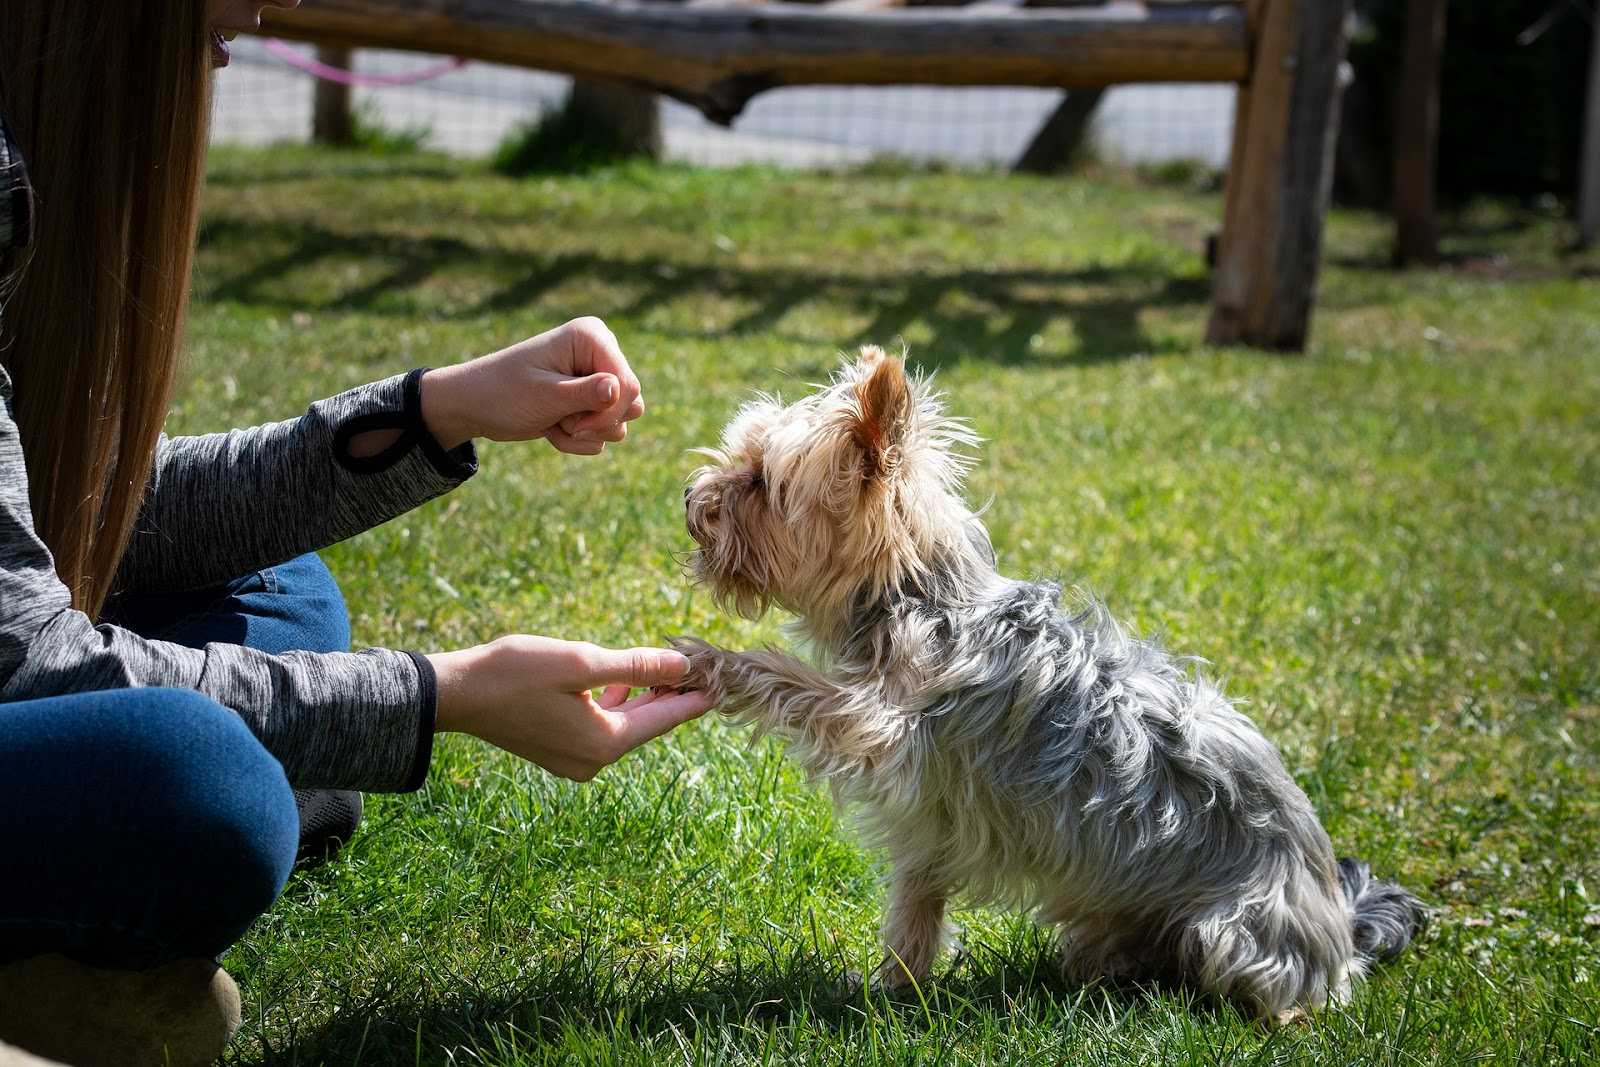 small yorkie dog sitting and has paw in woman's hand